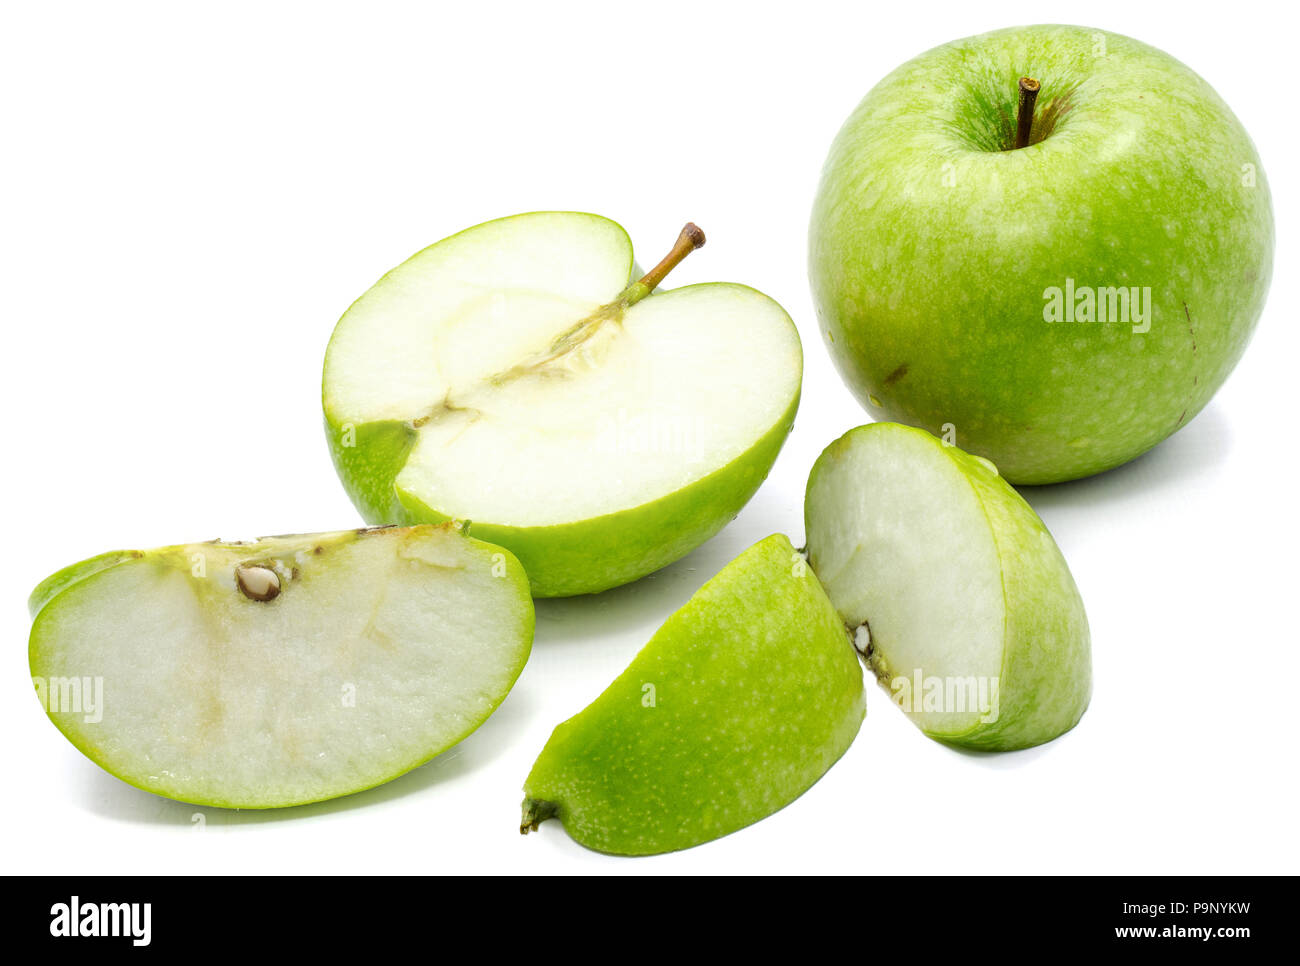 Sliced Apple Granny Smith One Whole Three Slices And One